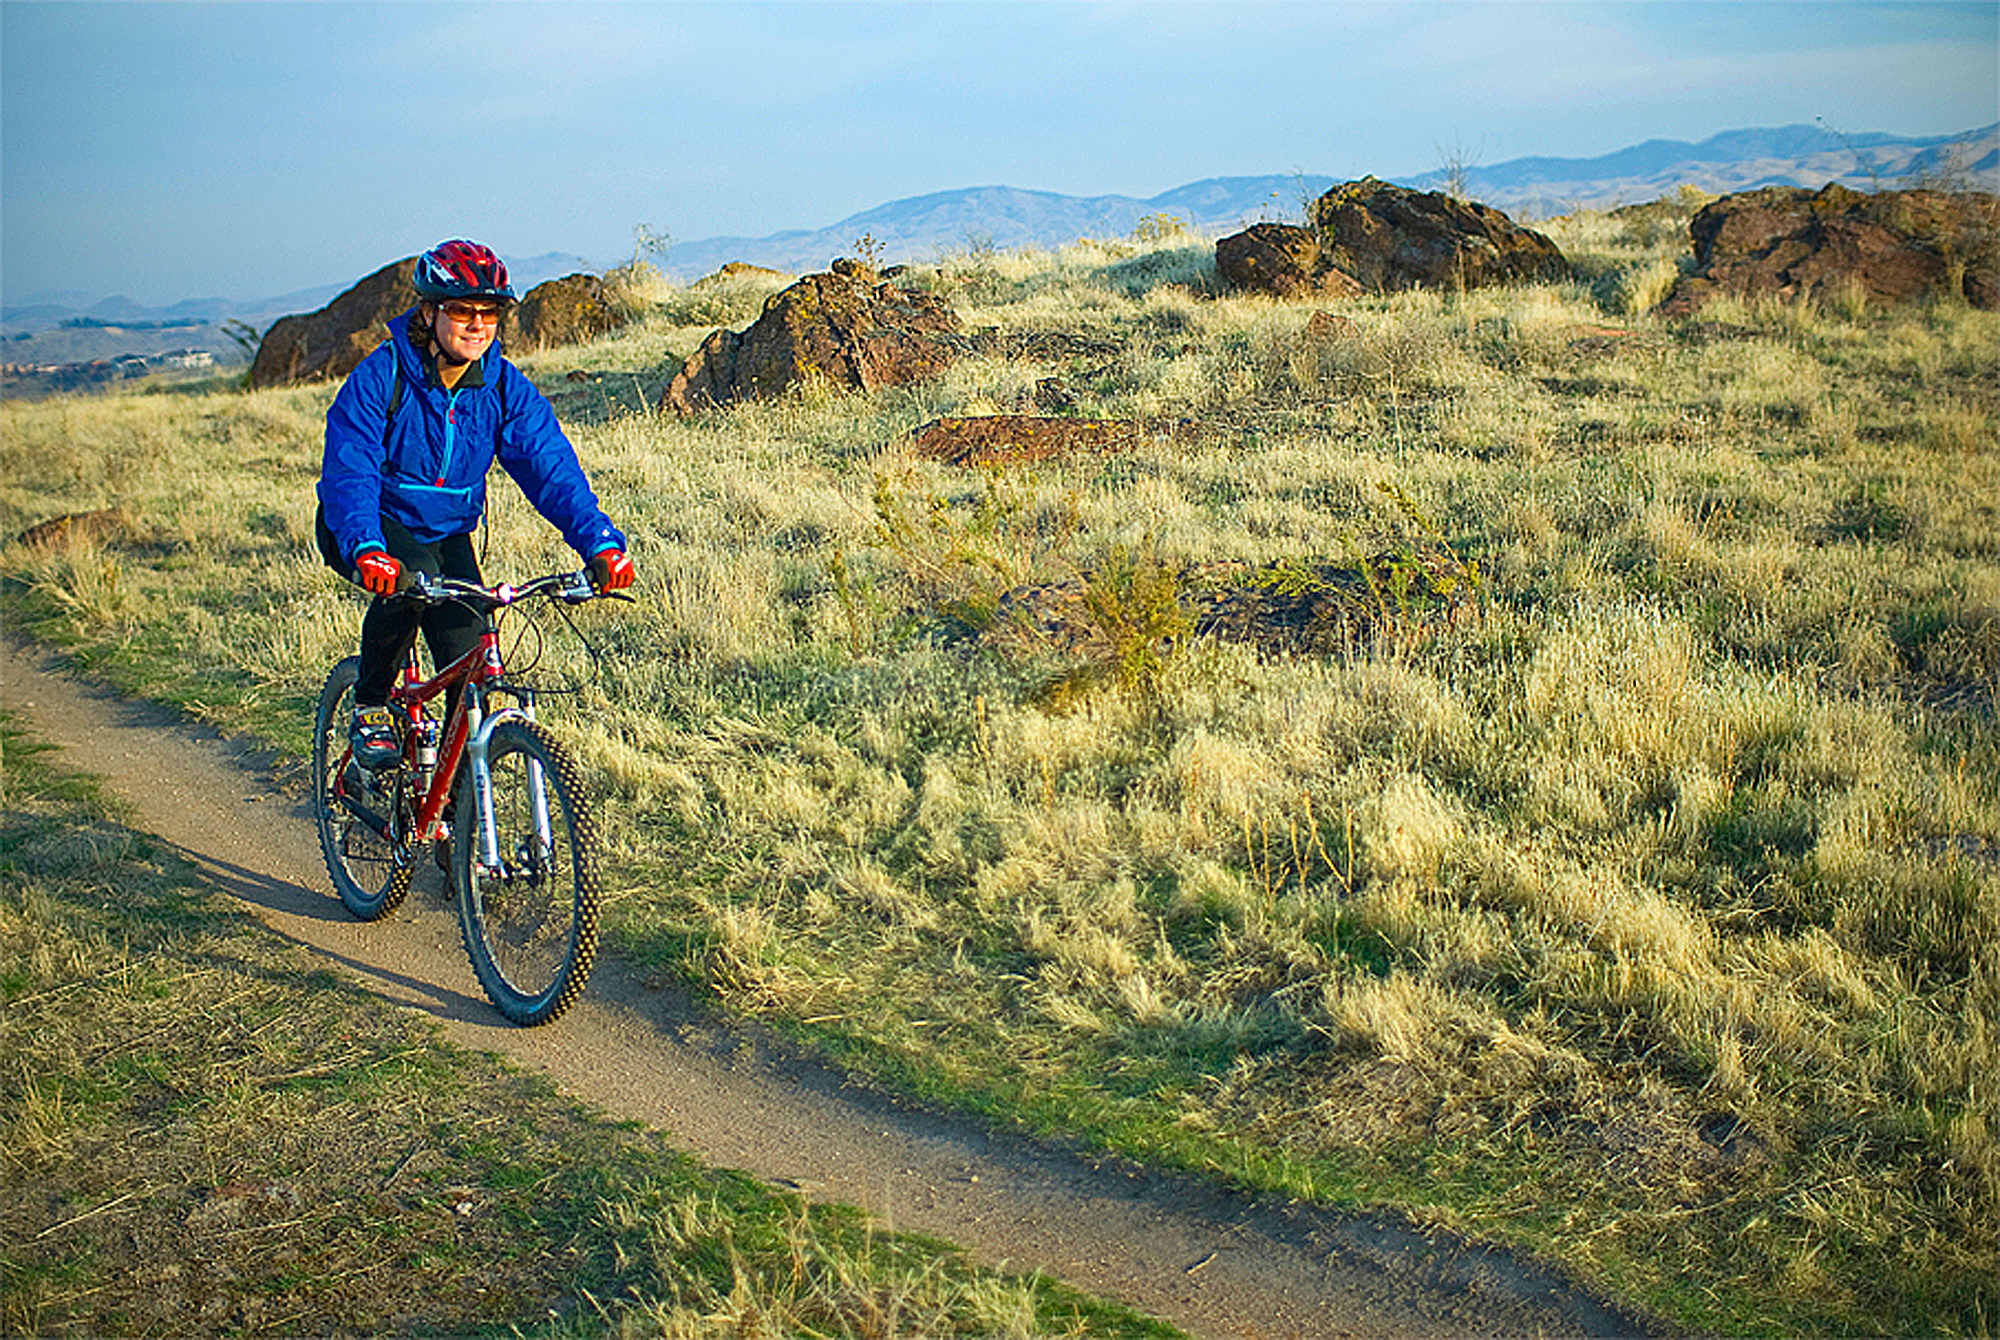 A mountain biker rides through the foothills above Boise, Idaho.